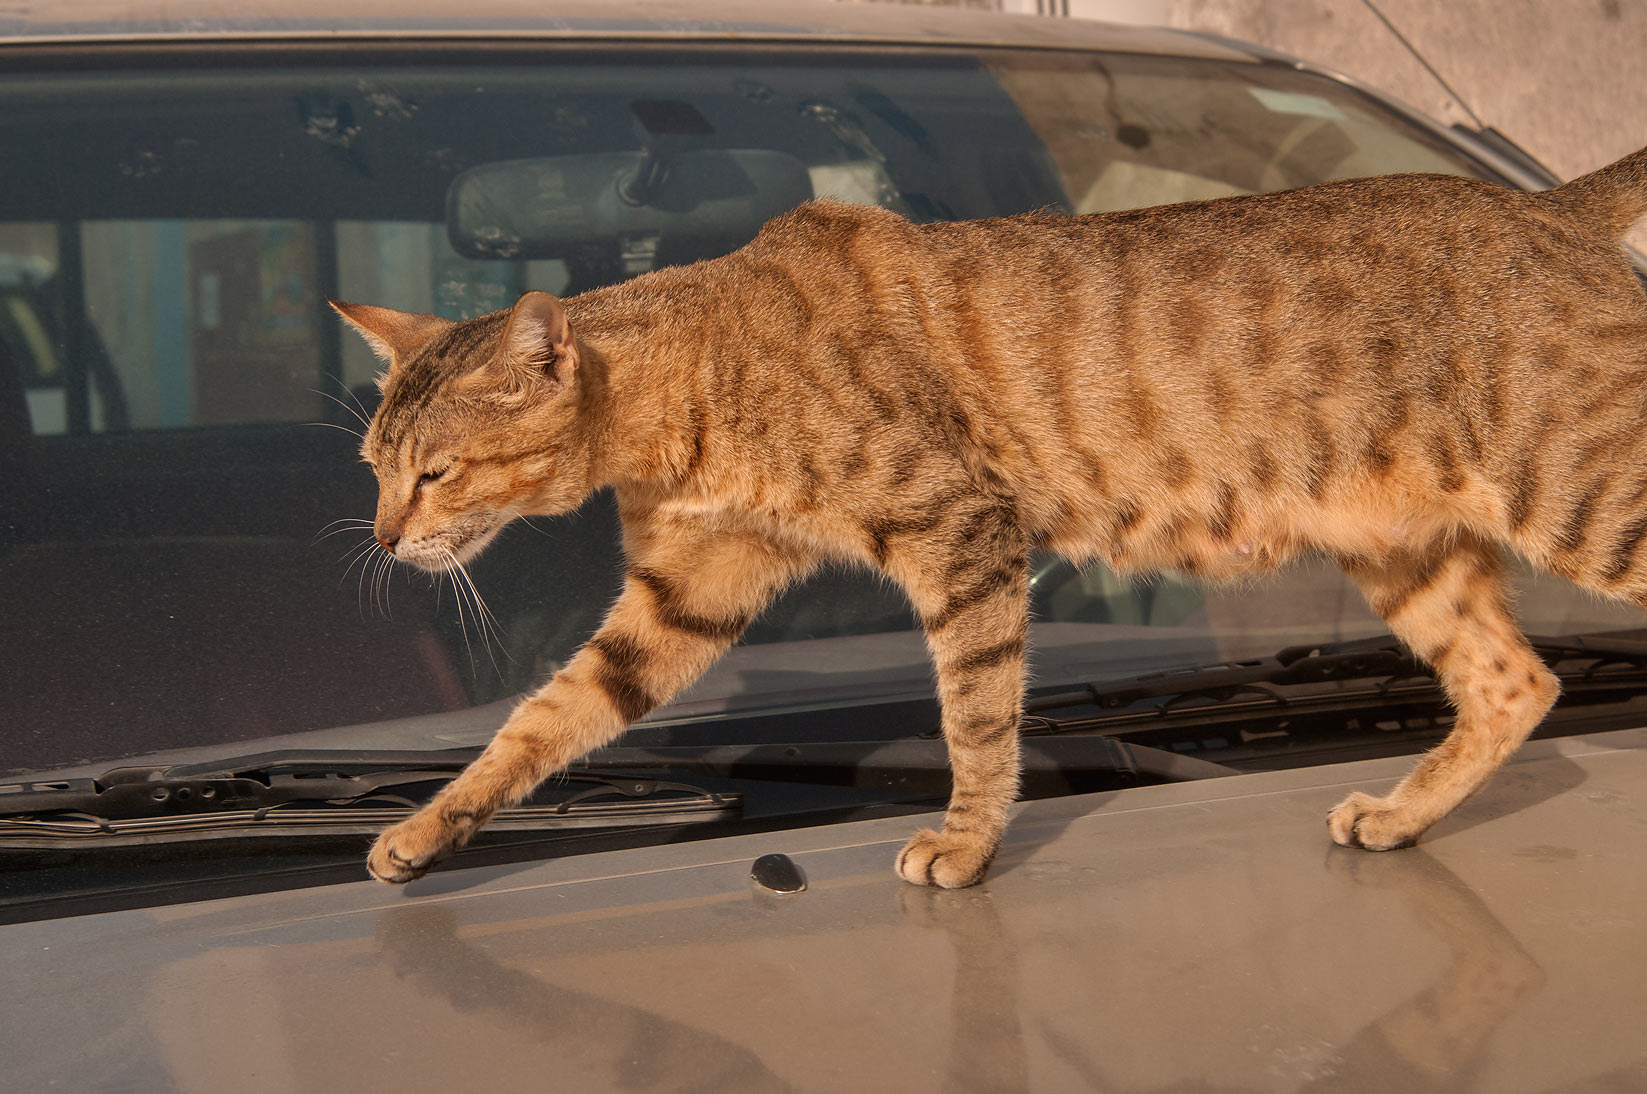 Cat on a car on Al Maymoun St., Musheirib area. Doha, Qatar